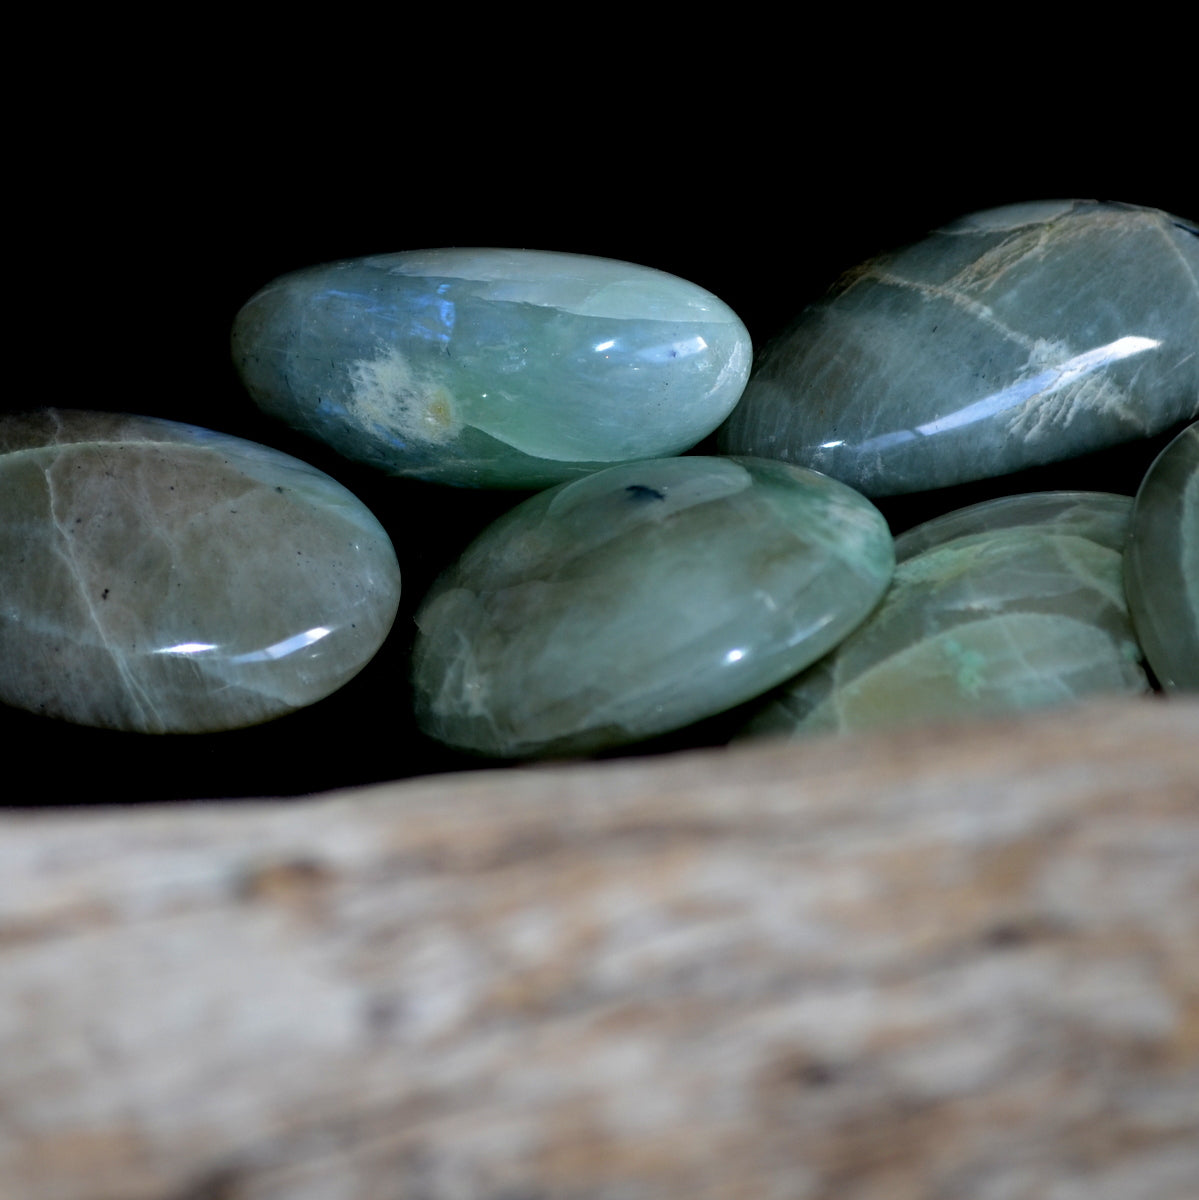 Garnierite Feldspar Palmstones - Tranquility Nurture Heart Healing - Shop Now at Illiom Crystals - Afterpay Available